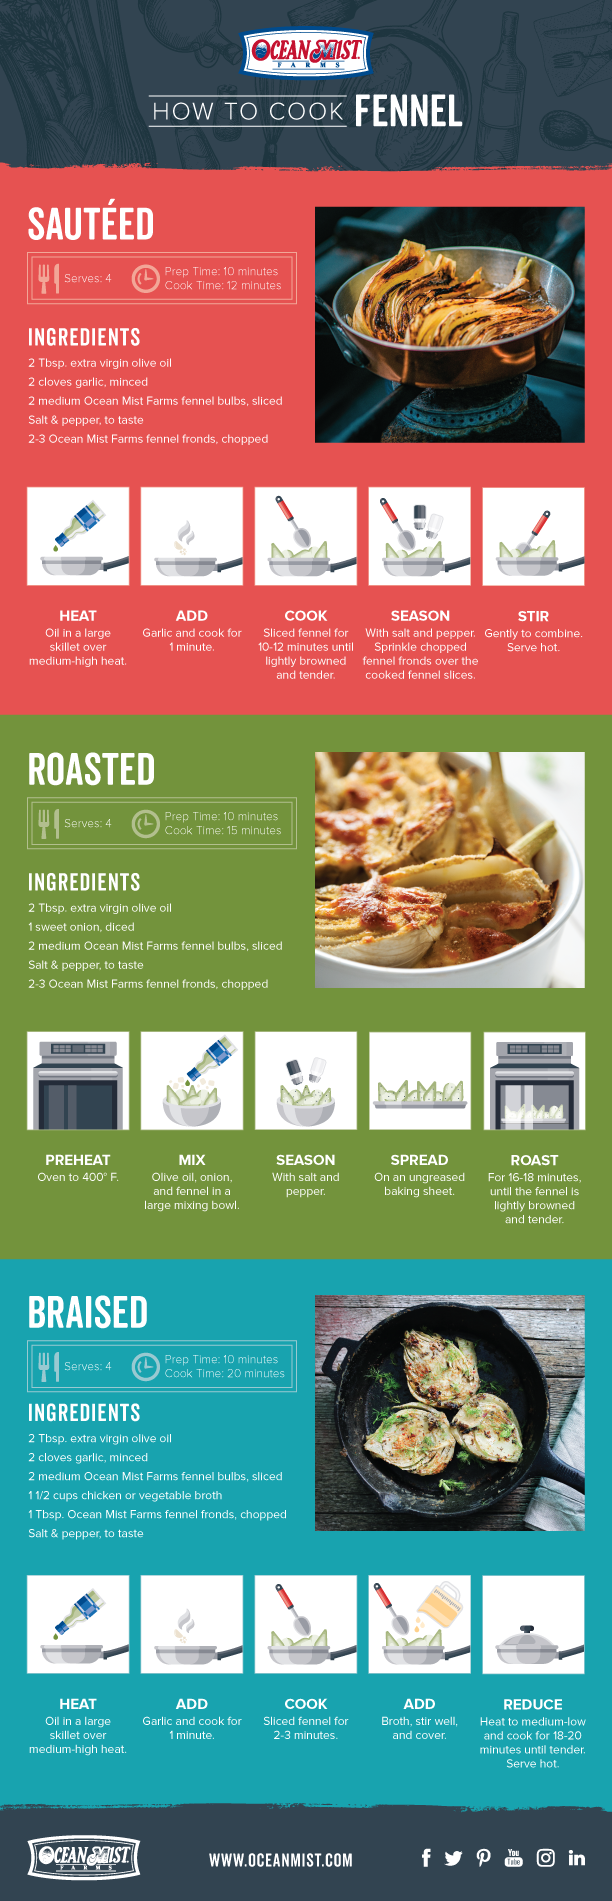 OM_How-to-Cook-Fennel_Infographic-1